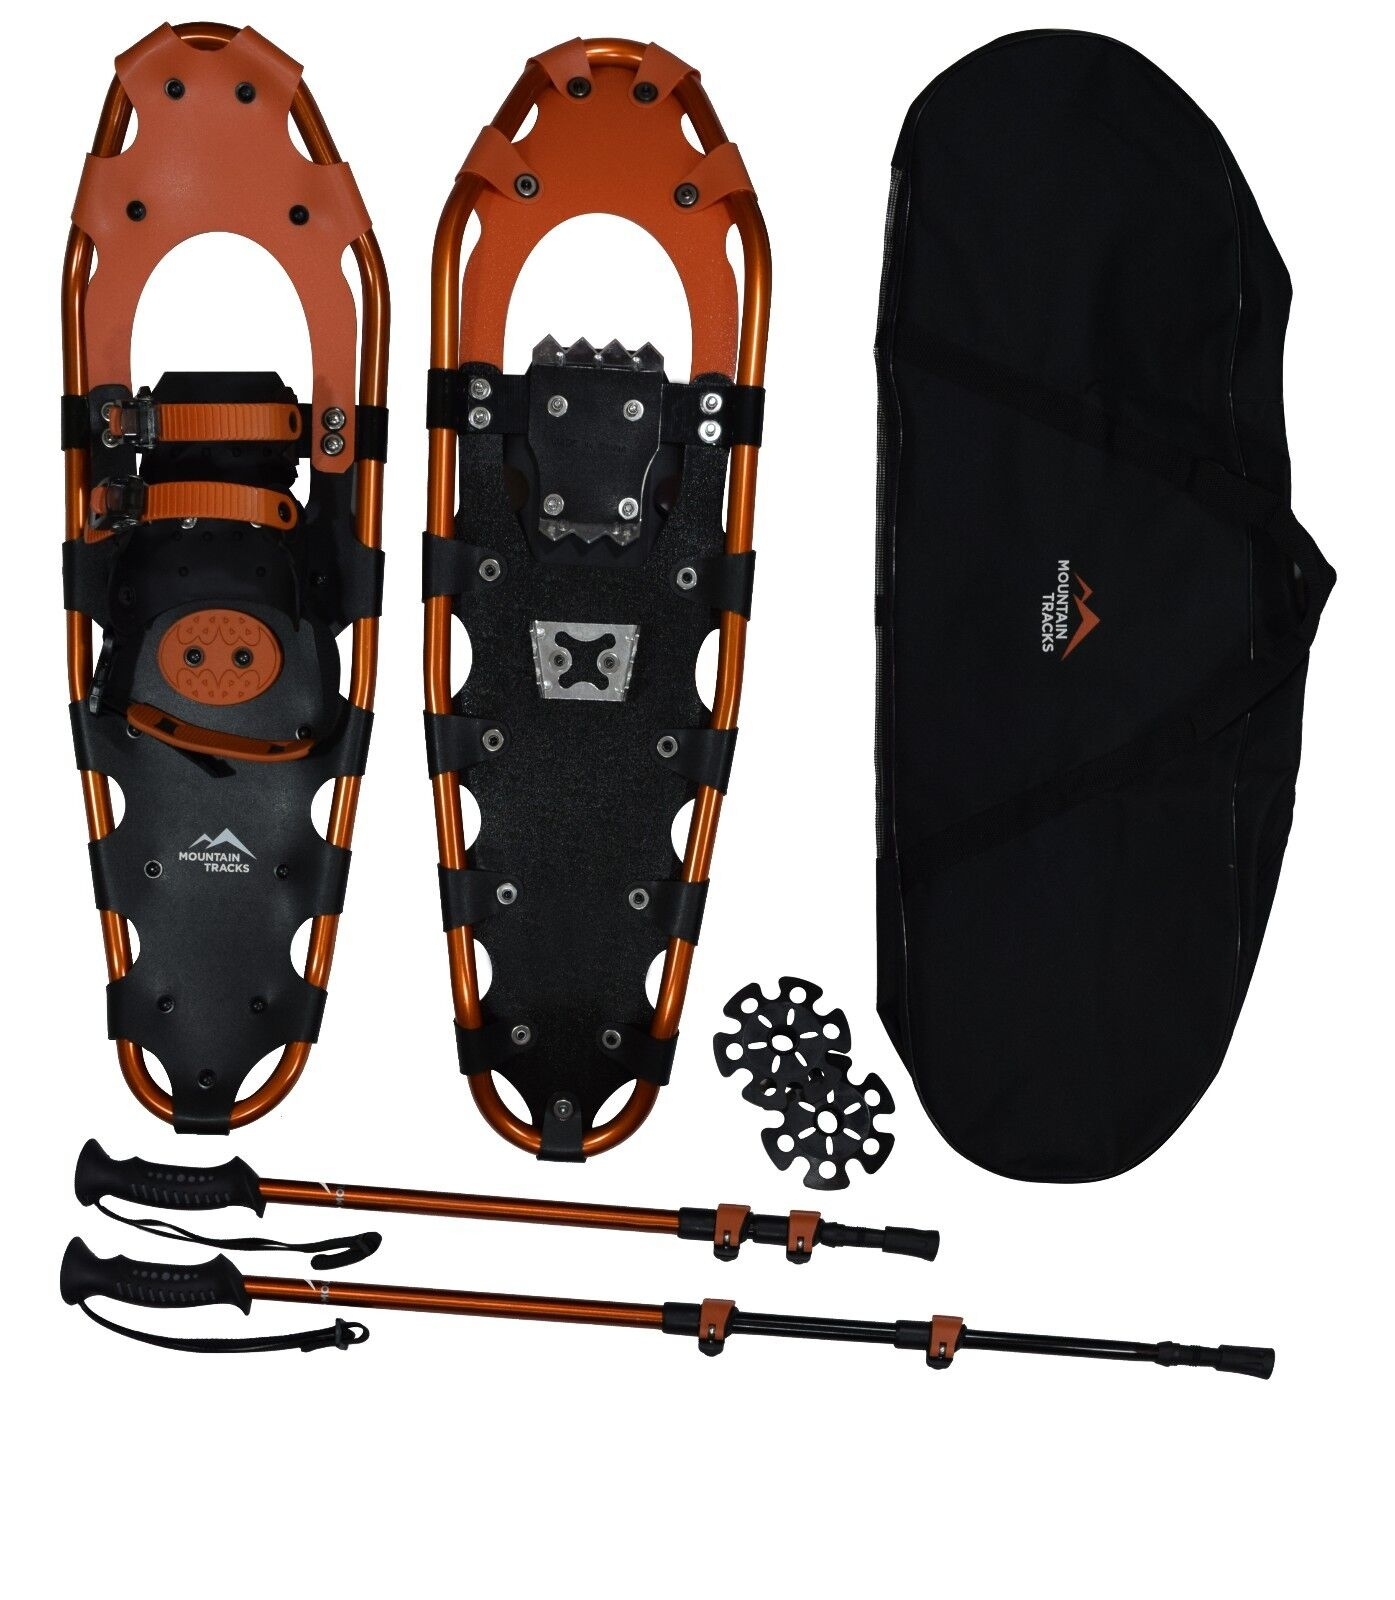 Mountain Tracks Pro Series Snowschuhe Set with Poles & Carry Bag (72cm or 2.35ft)